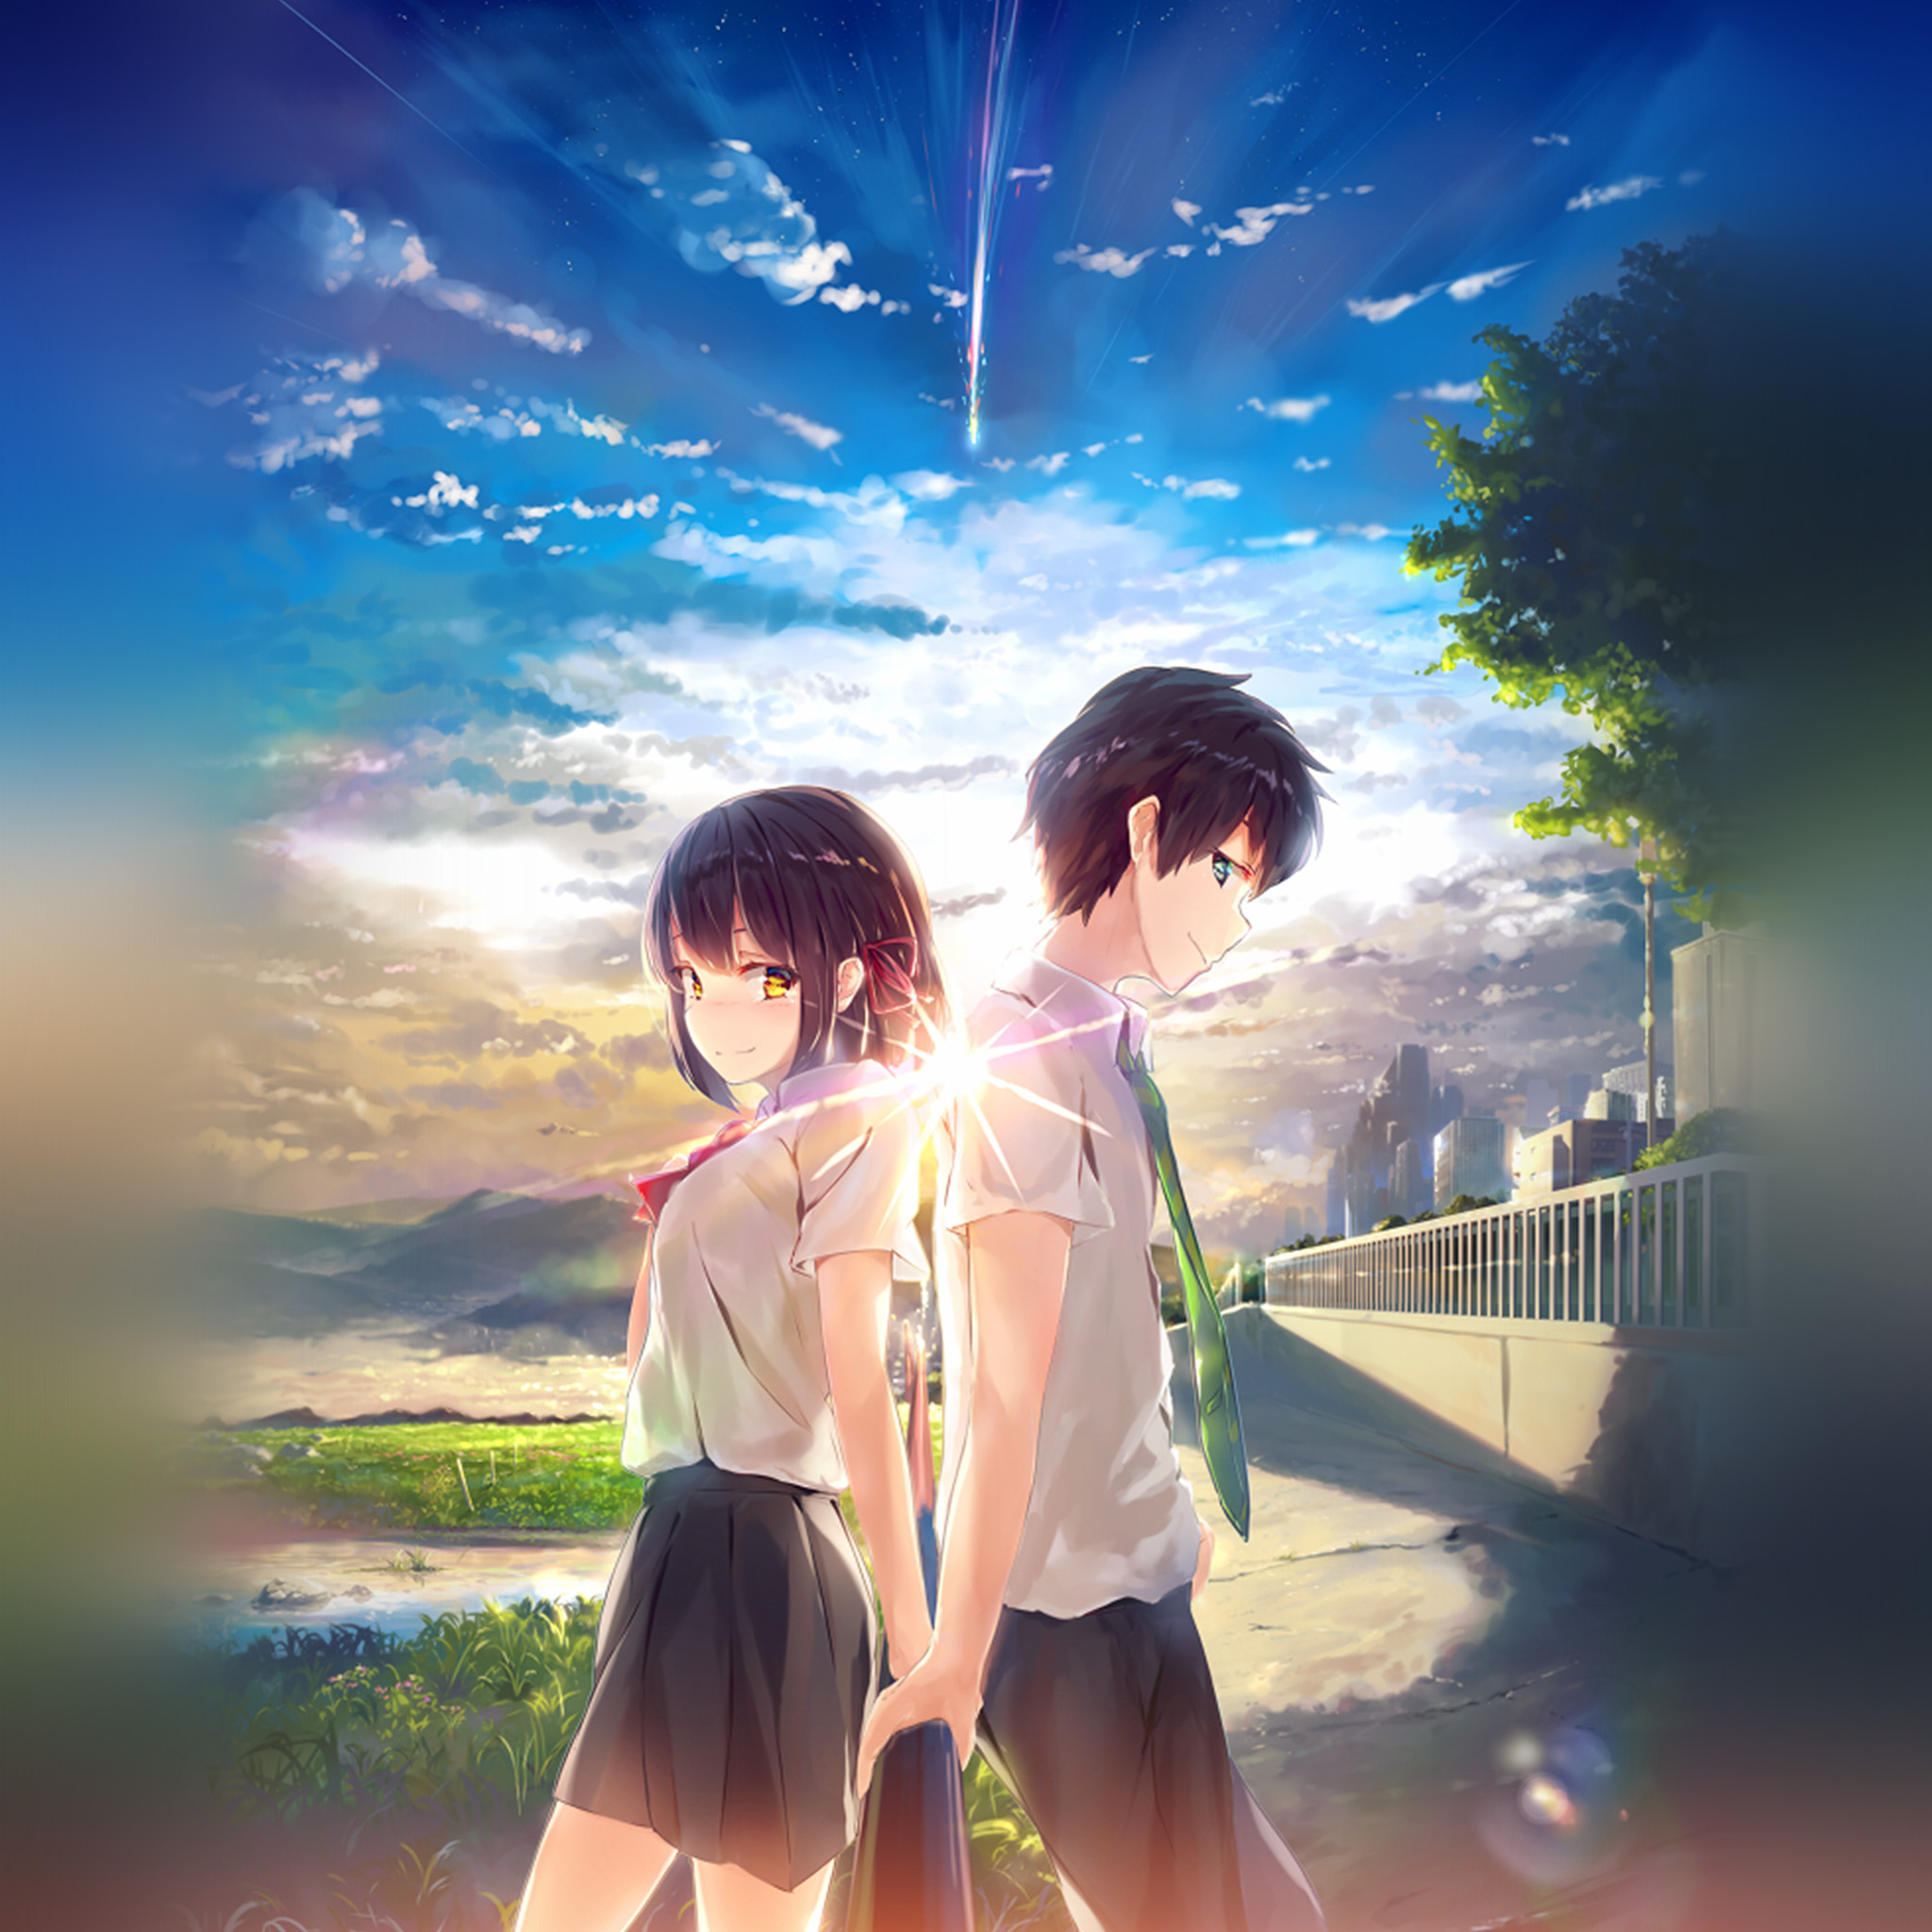 Image Result For Your Name Anime Wallpaper Android